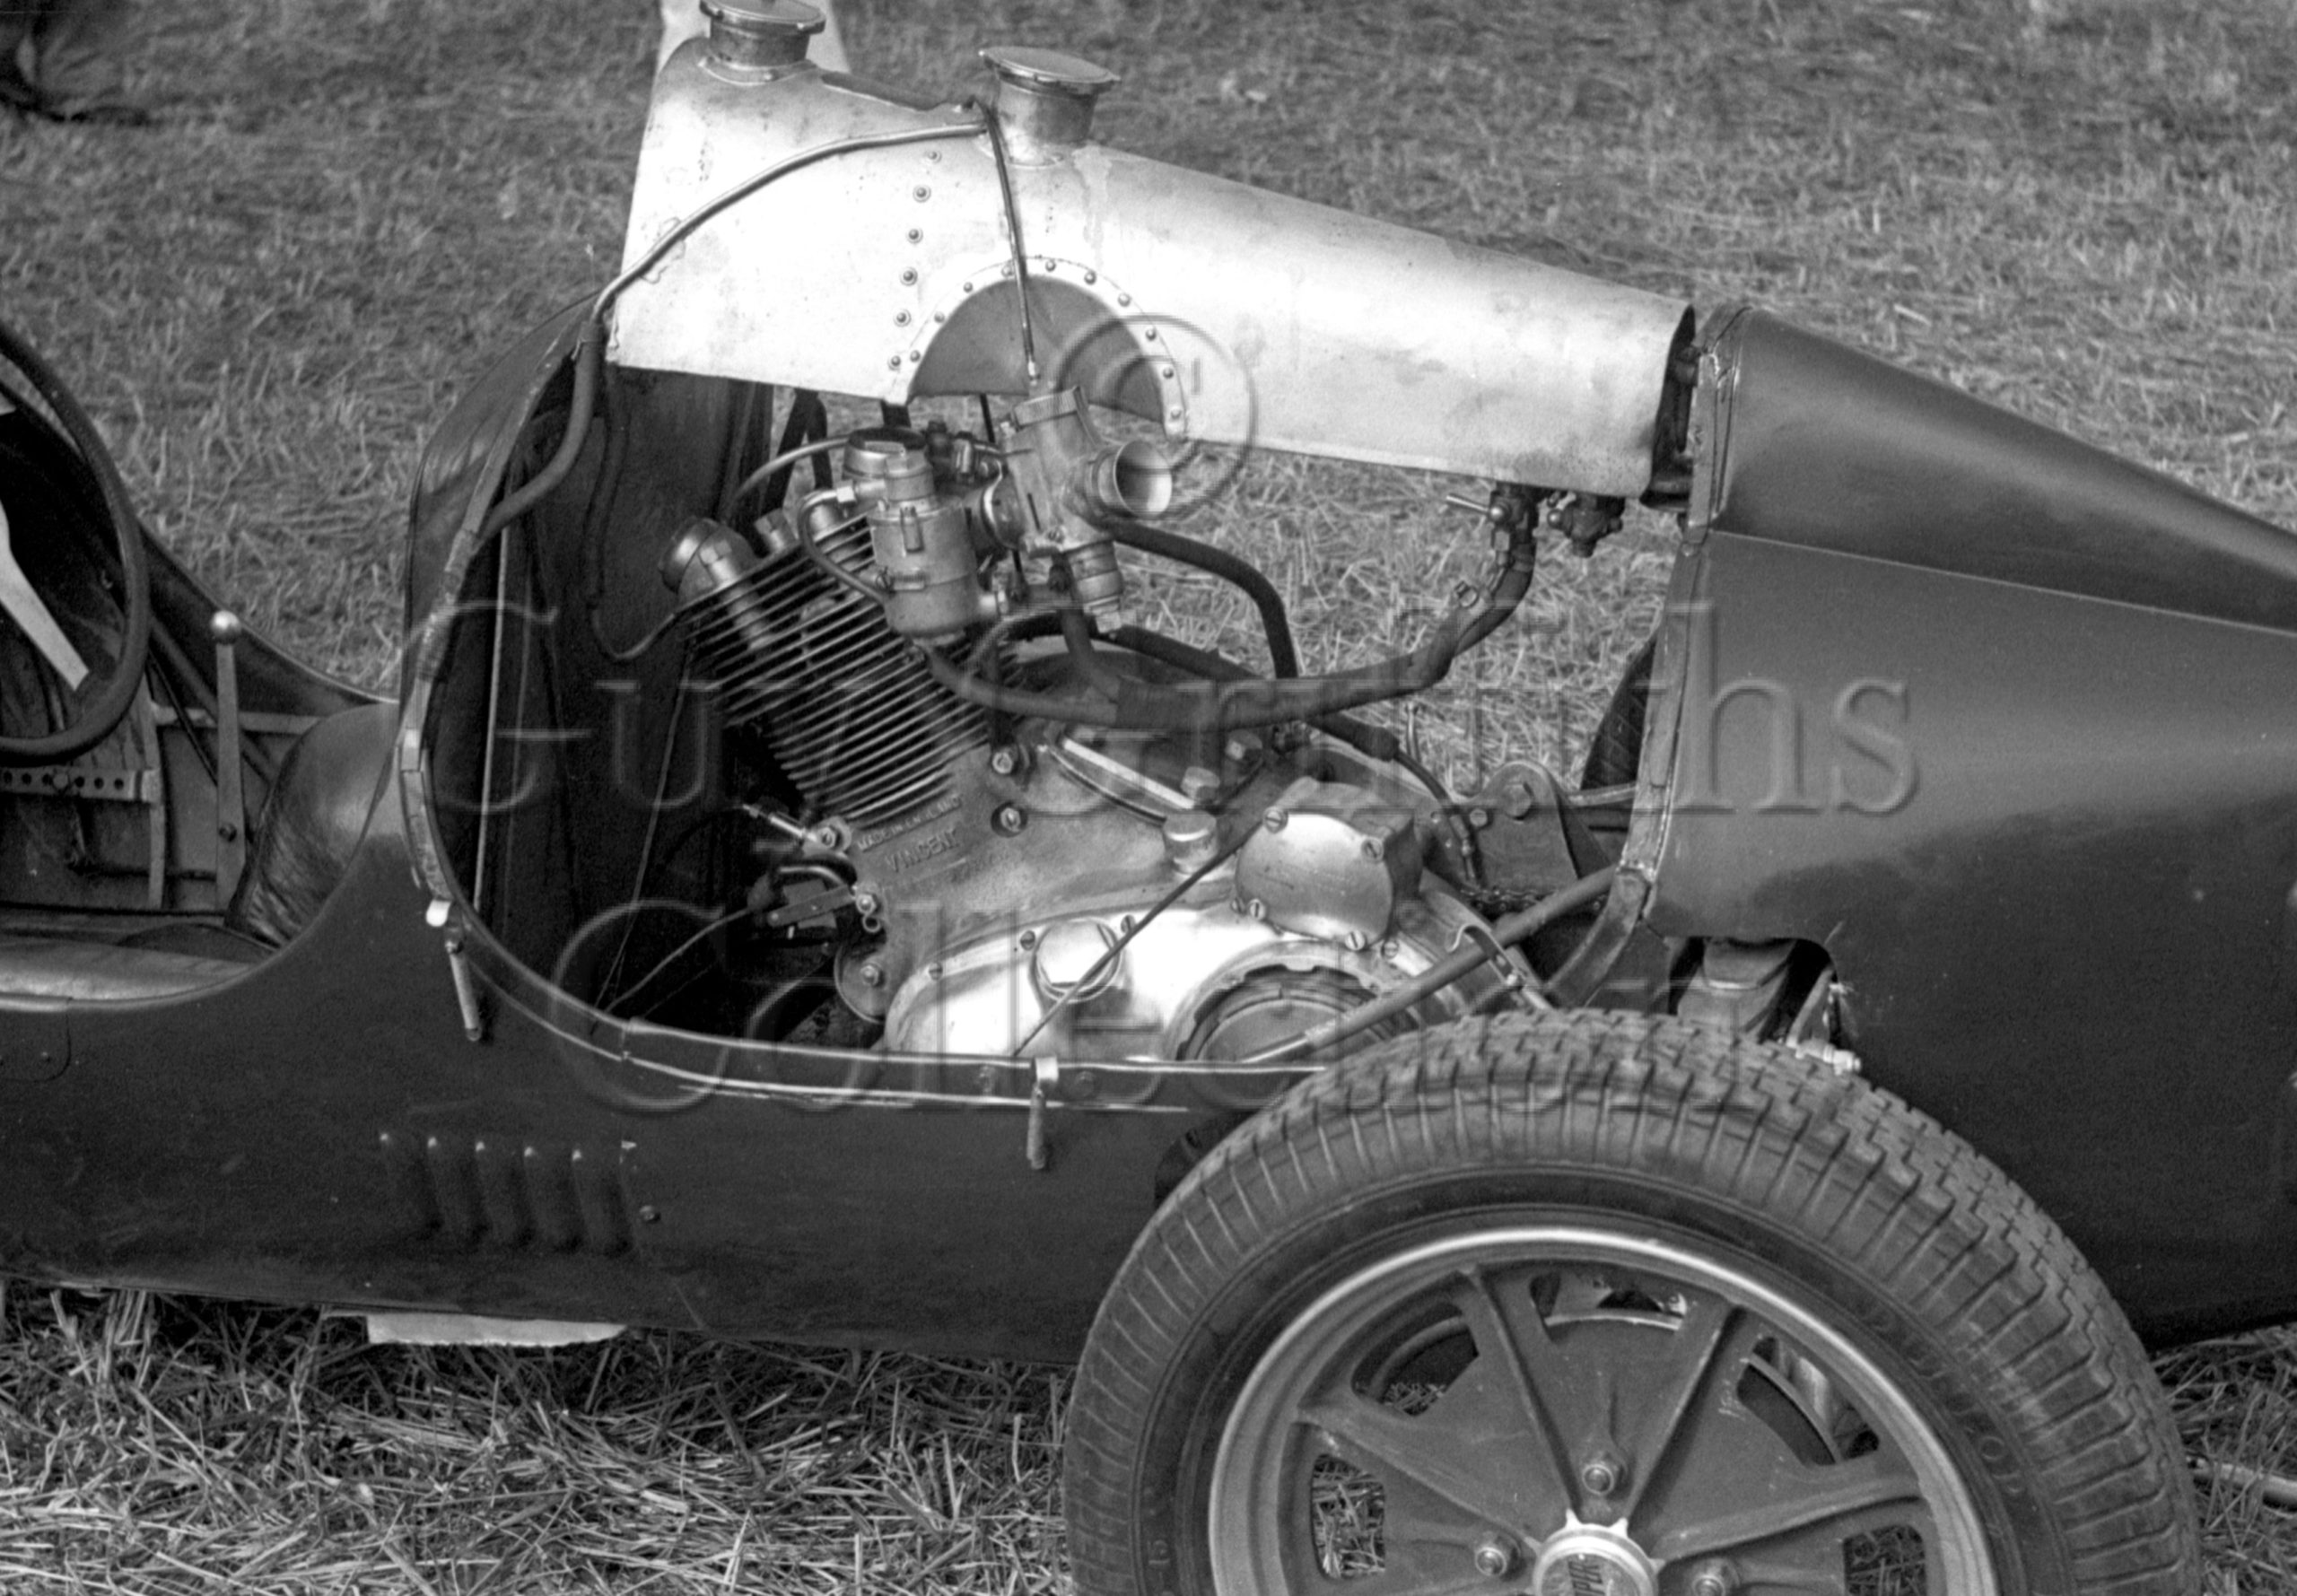 29-804-B–Vincent-engine–Silverstone–13-05-1950.psd.jpg - Guy Griffiths Collection